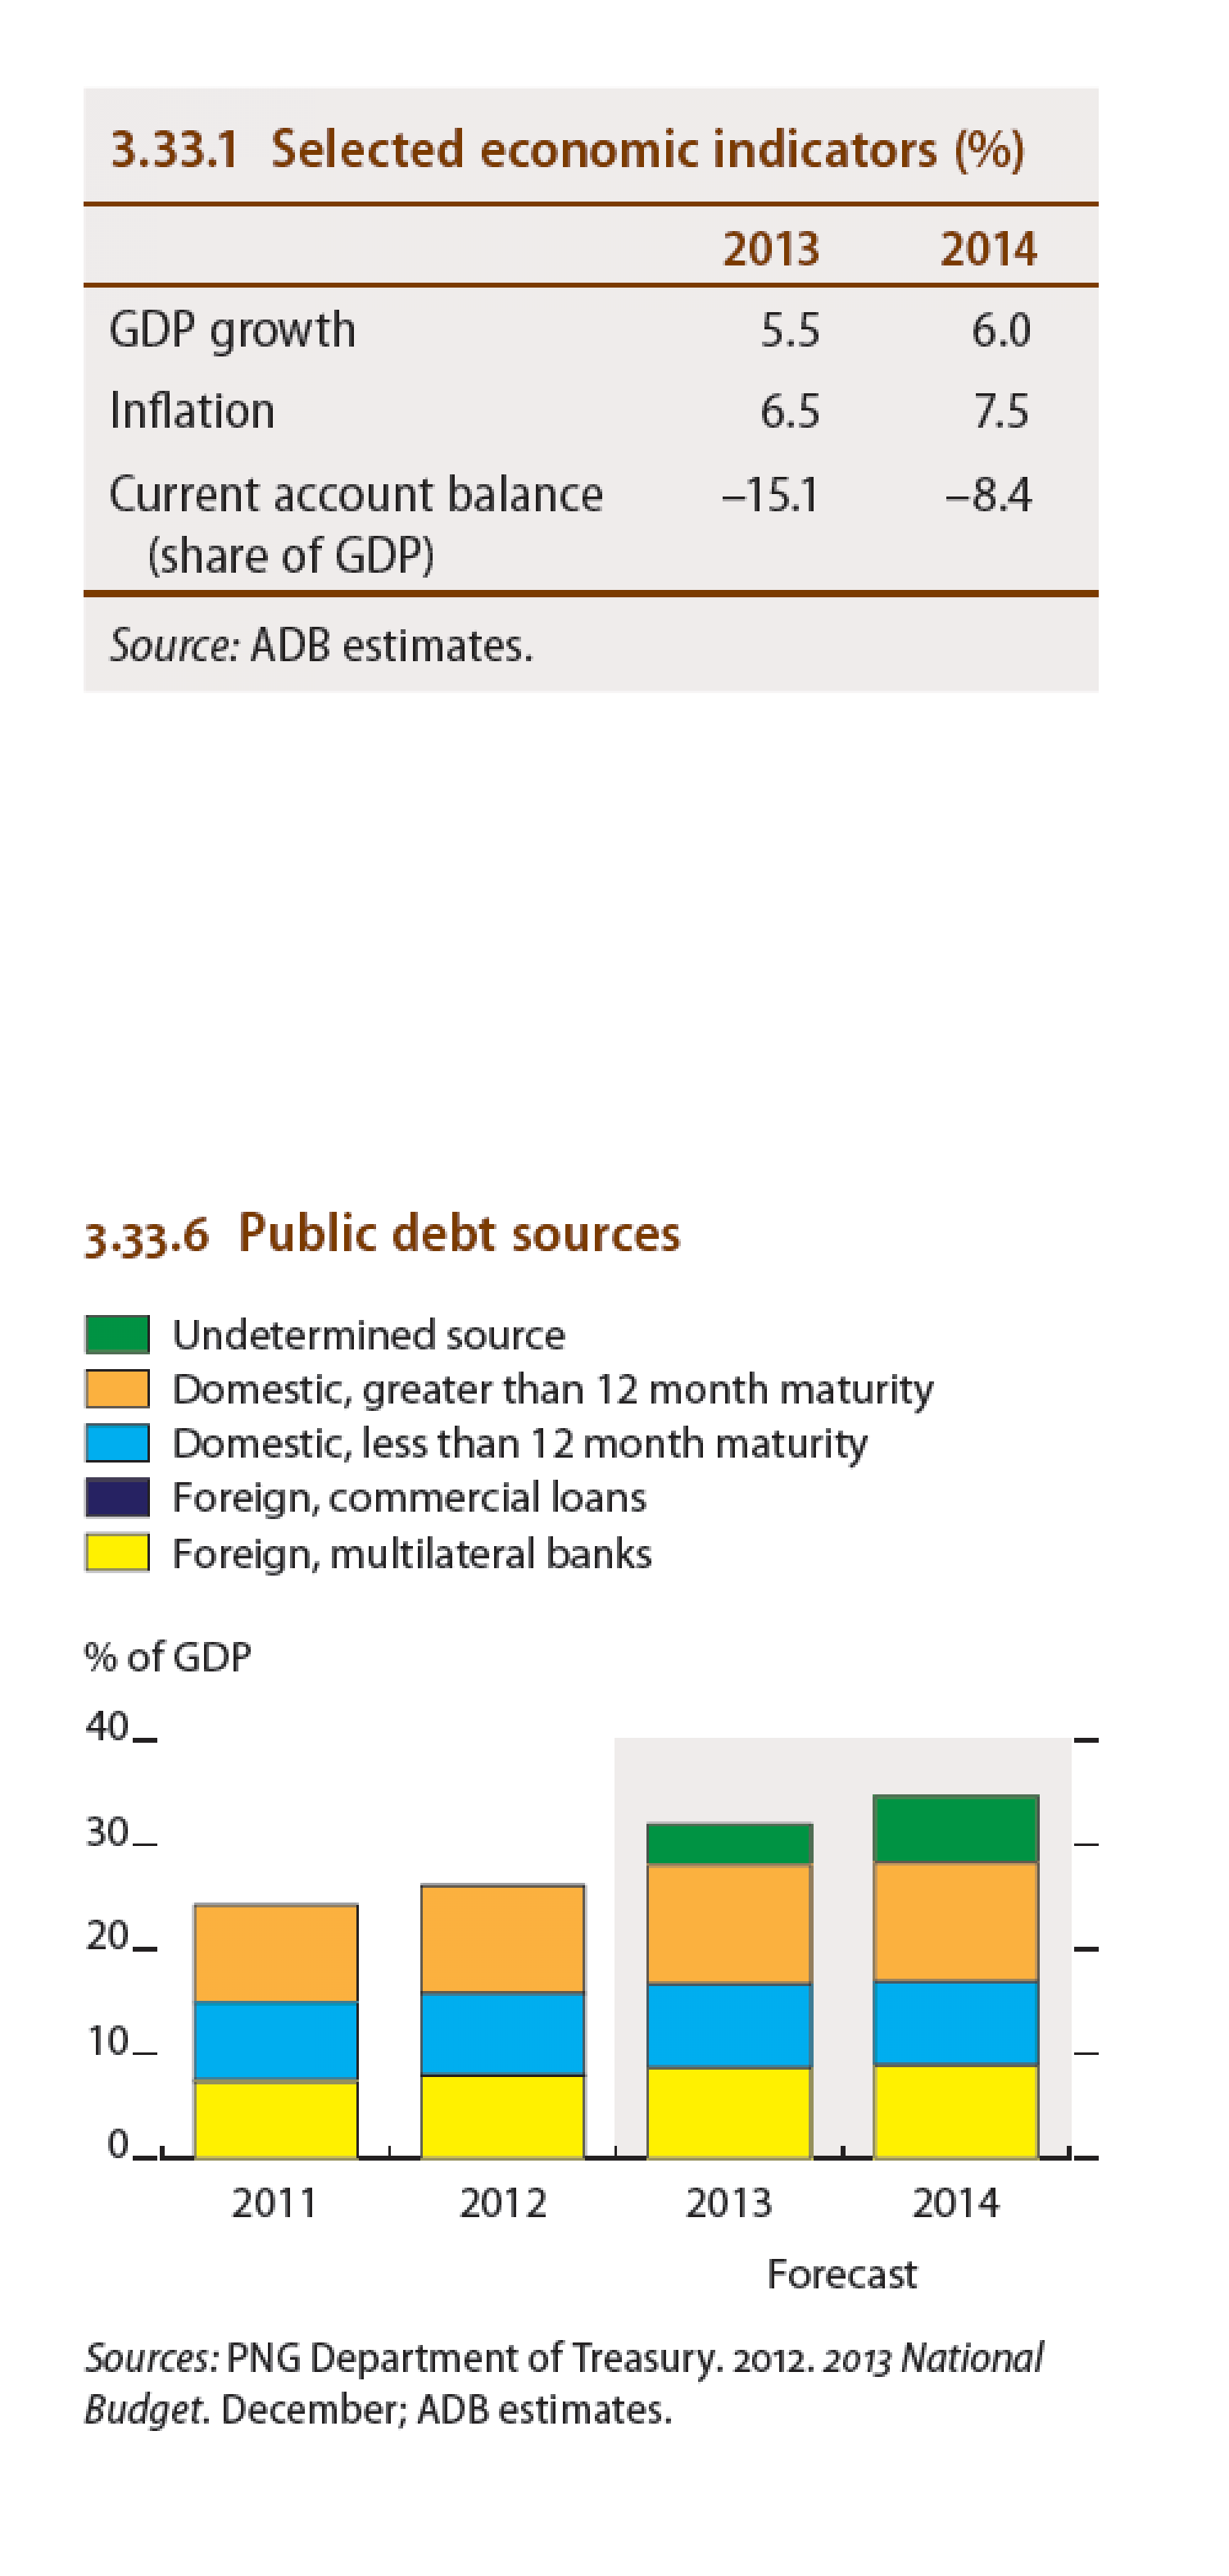 Papua New Guinea : Selected economic indicators (%), Public debt sources Infographic